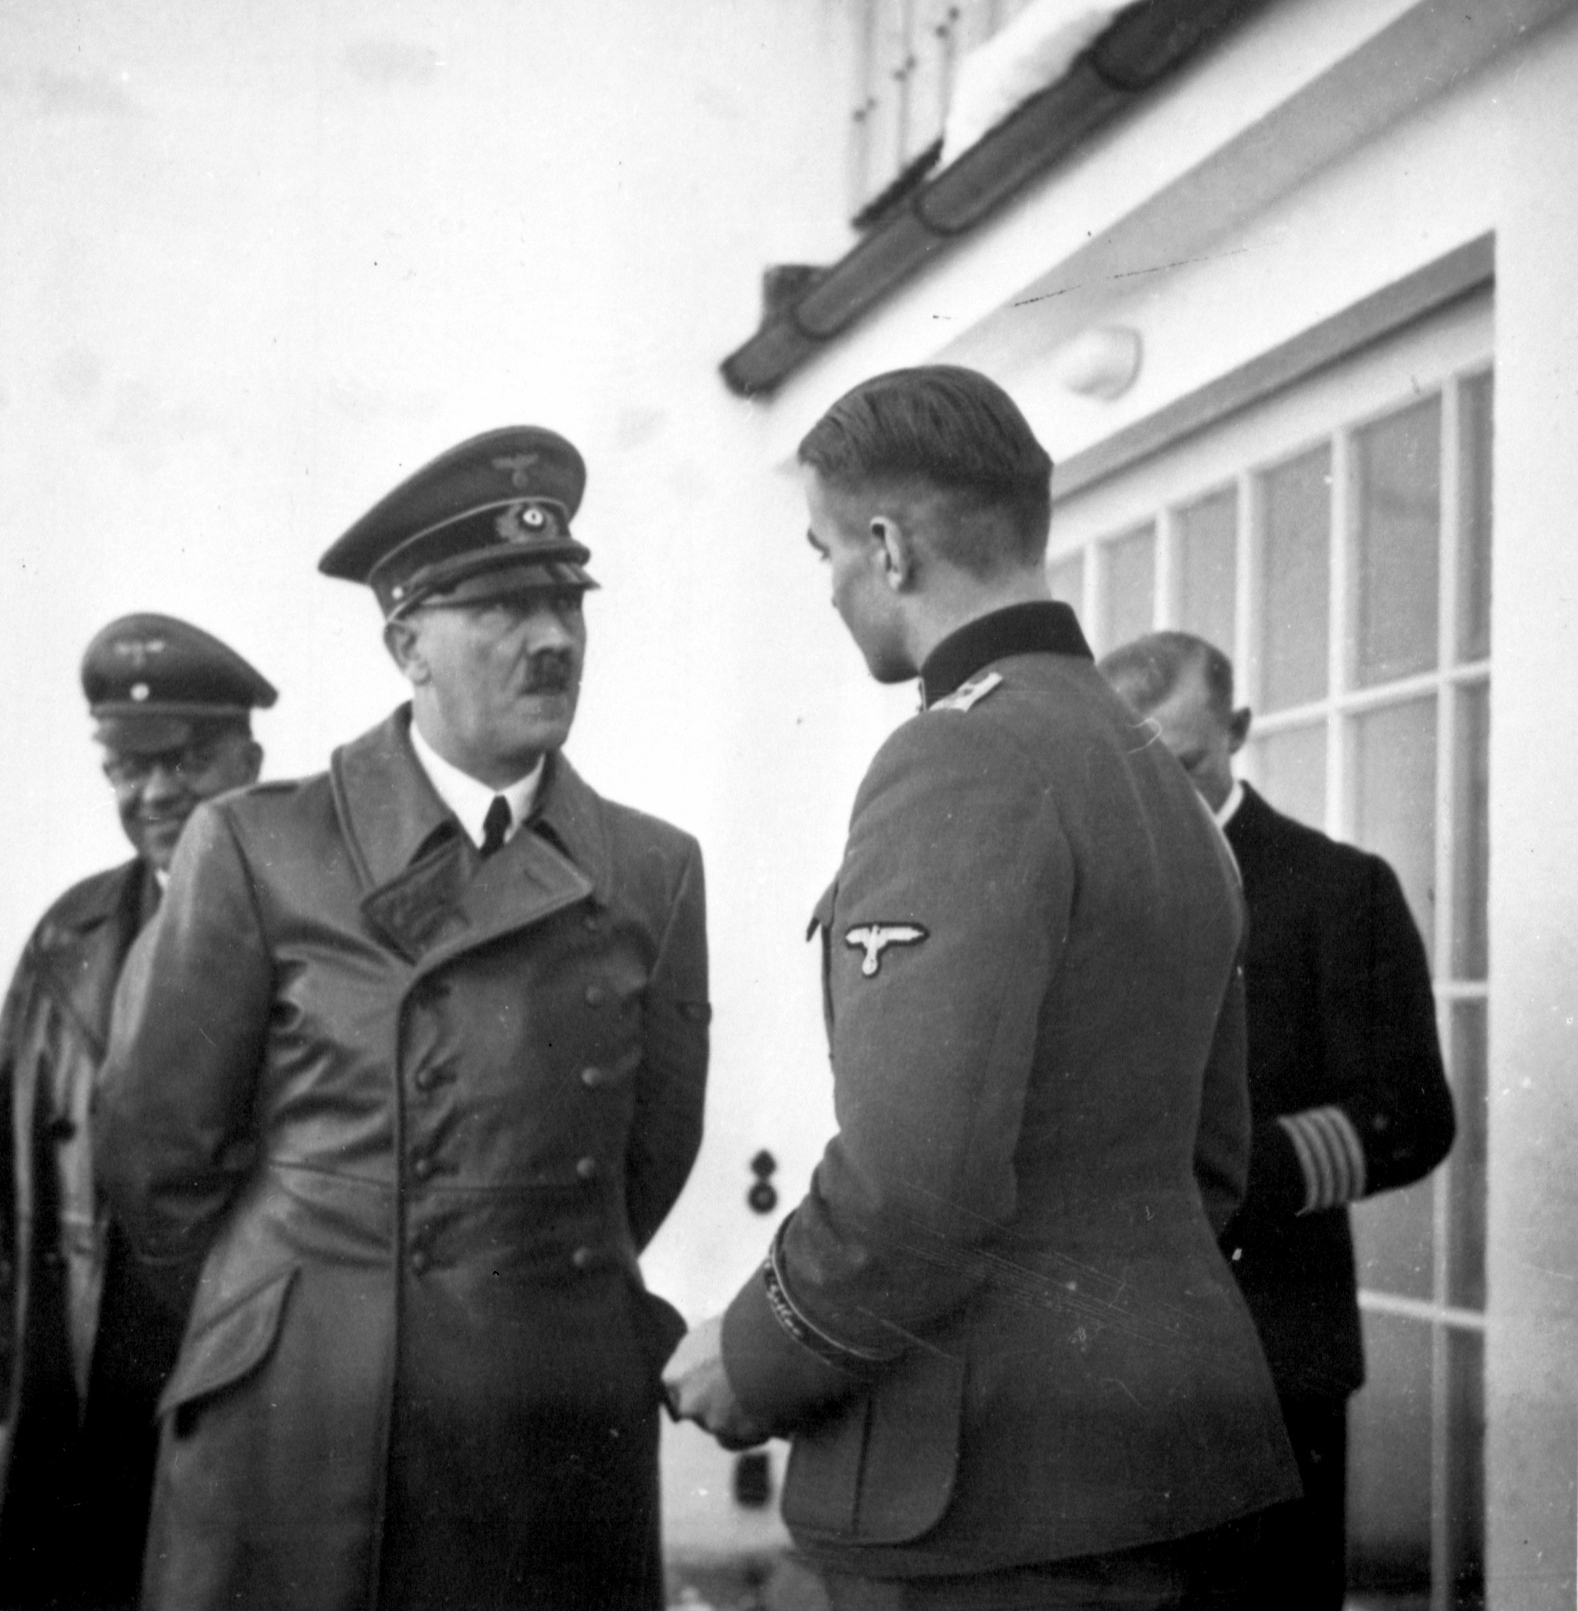 Adolf Hitler talking to Max Wünsche on the Berghof terrace early January 1940, from Eva Braun's albums